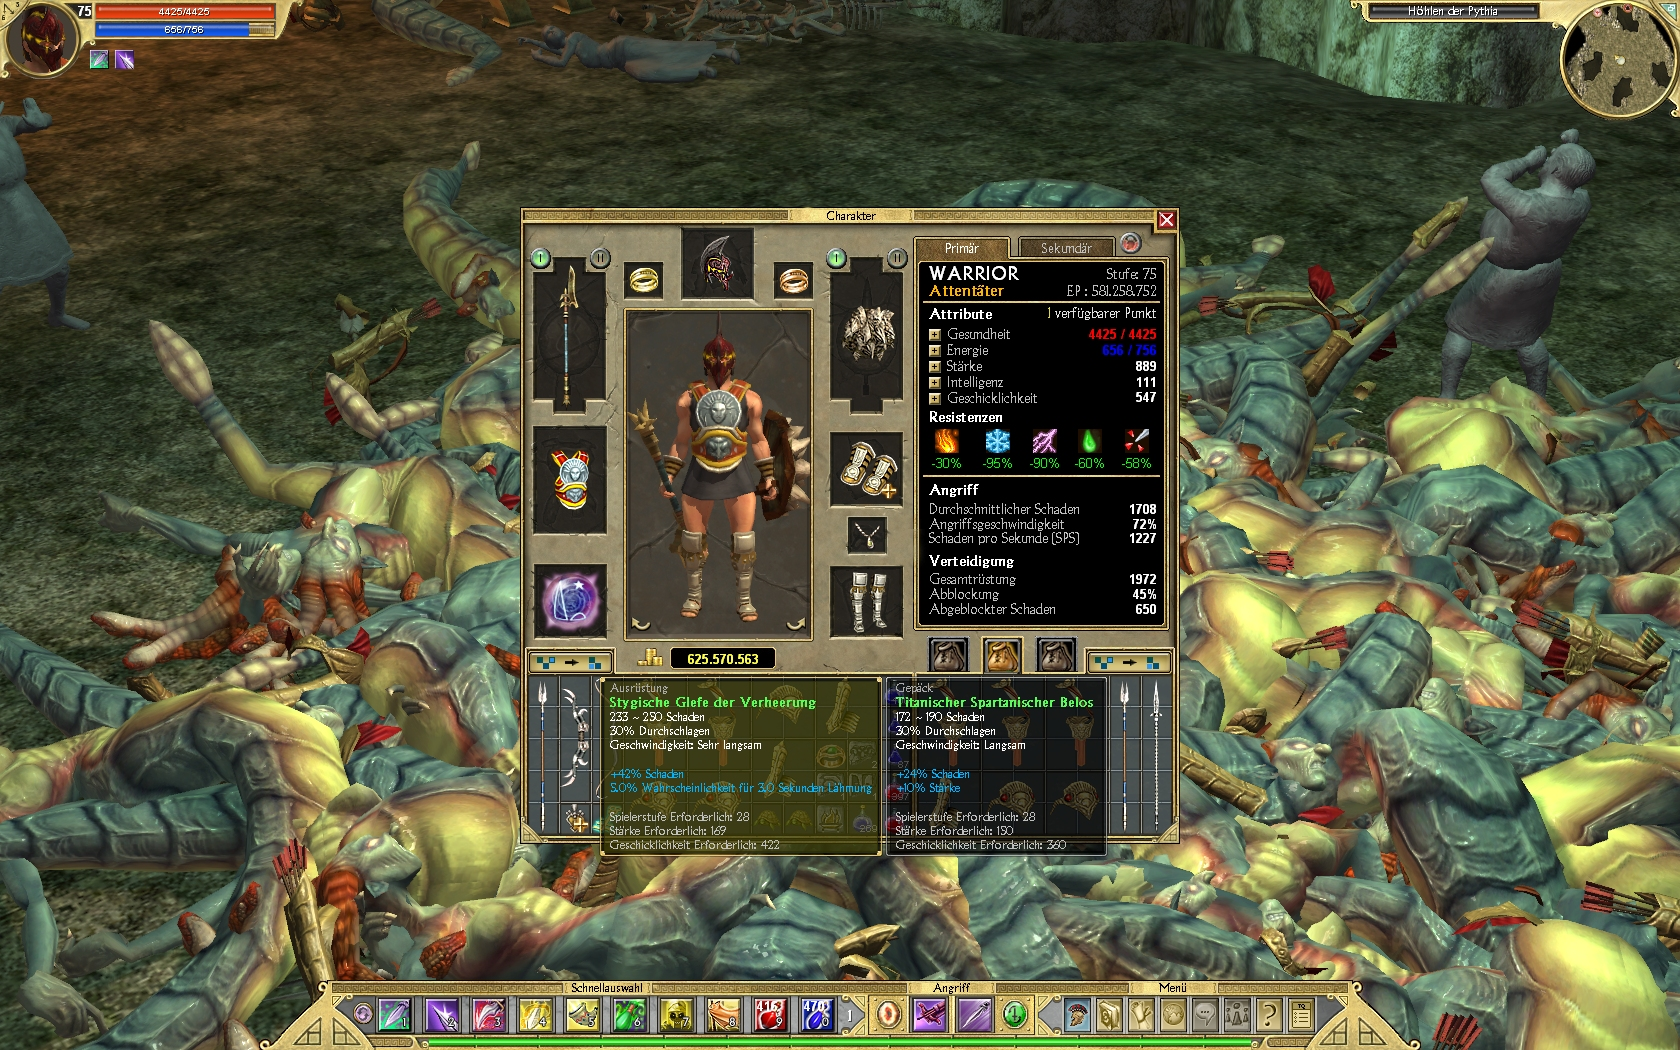 screenshot03.jpg